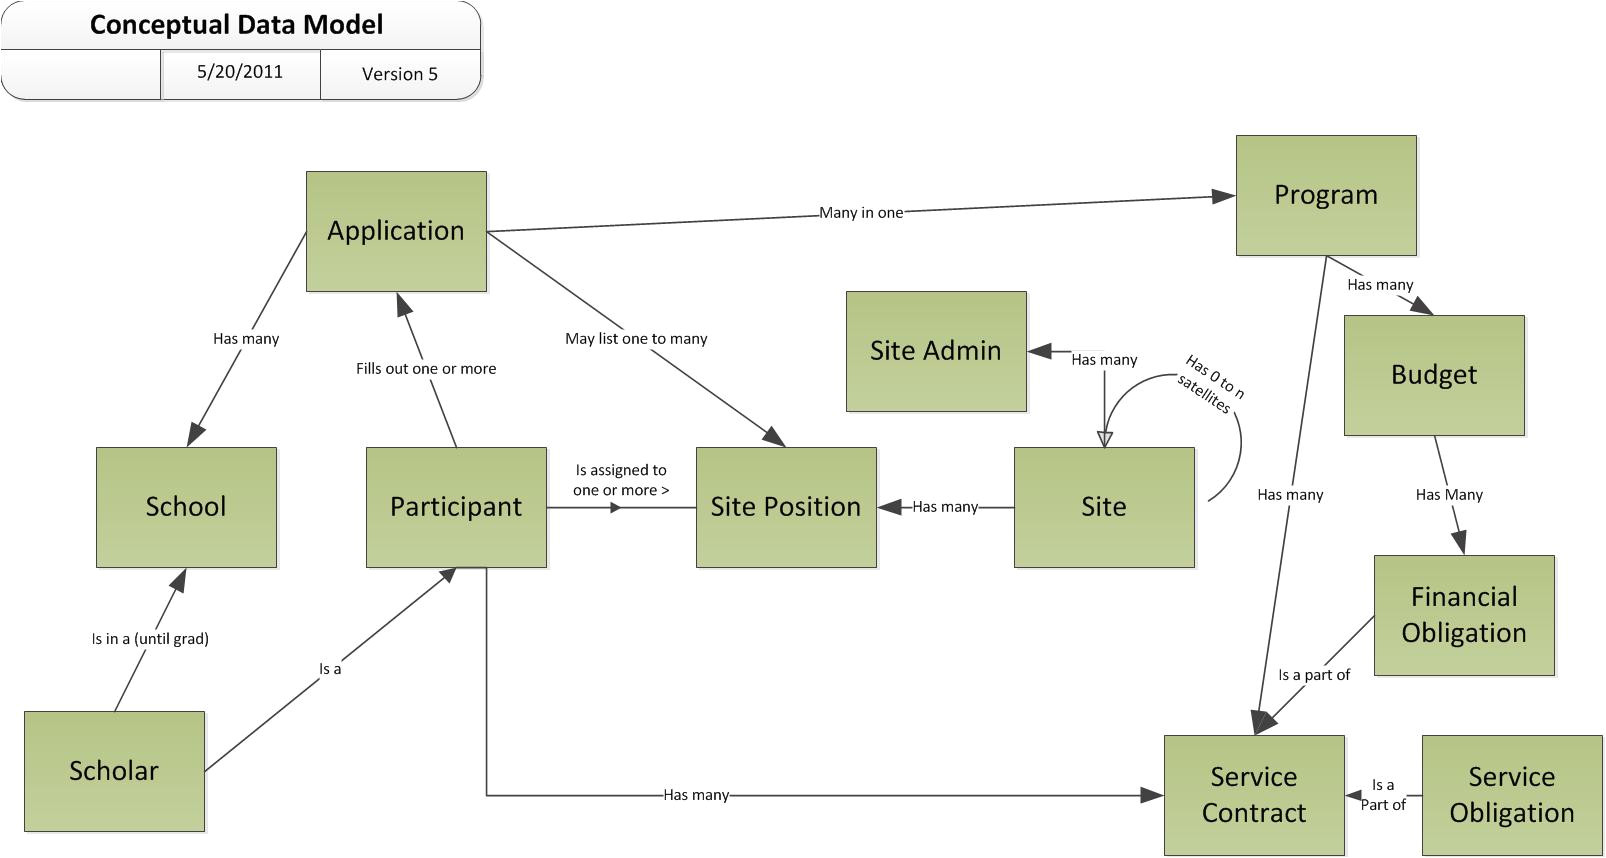 Conceptual Site Model Template An Example Conceptual Data Model Diagram Leonard S